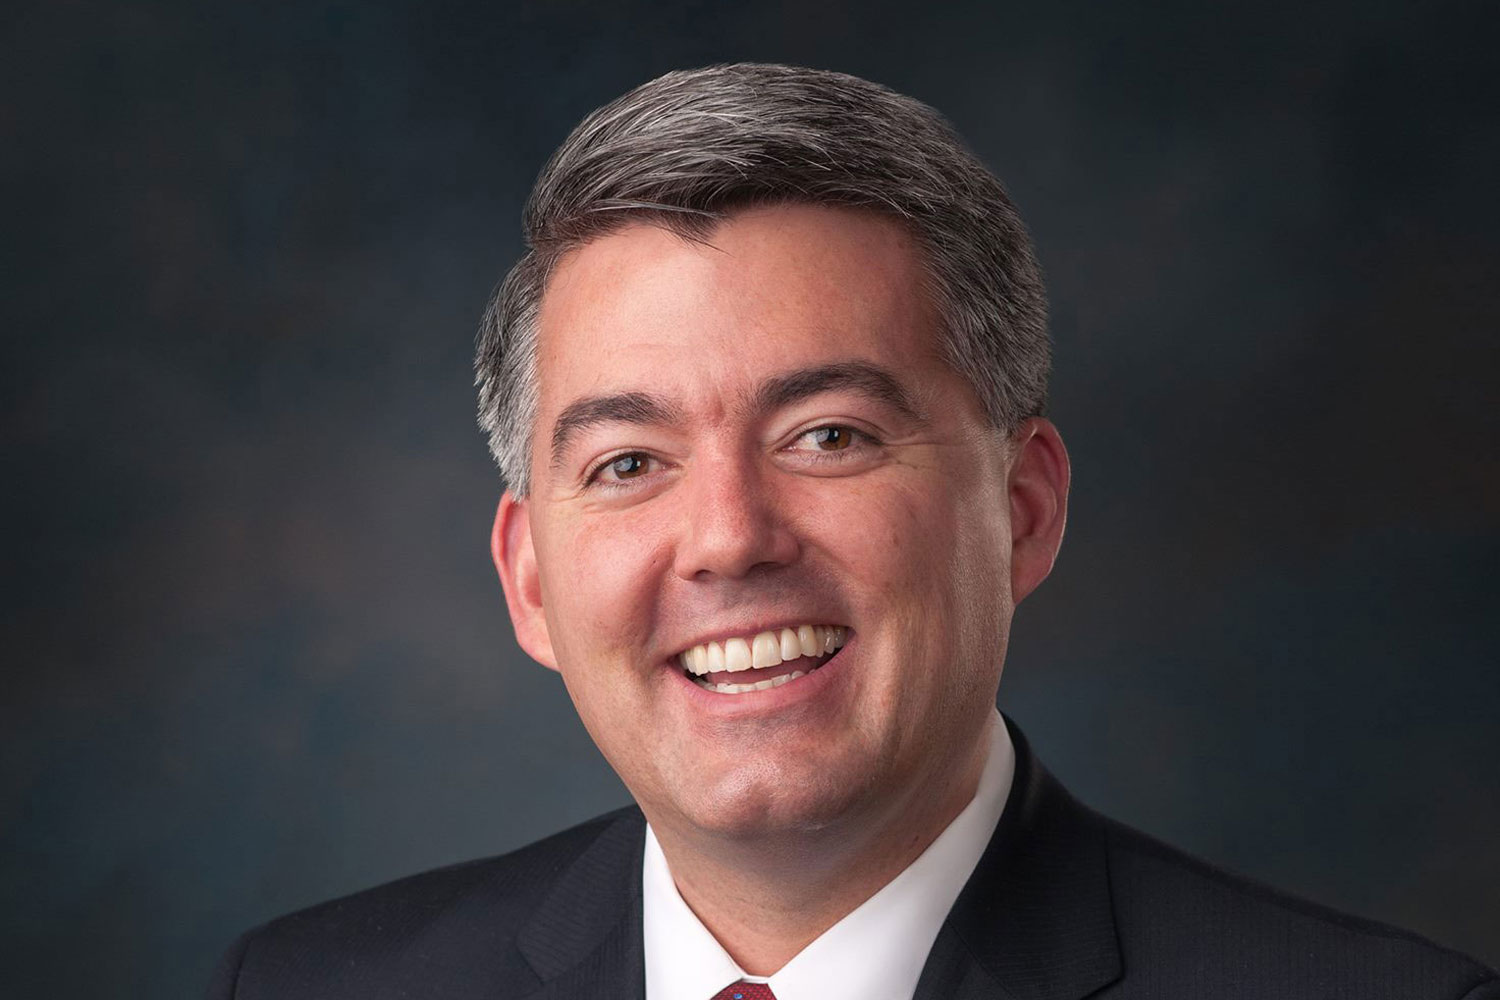 Photo: Sen. Cory Gardner Official Portrait 3x2